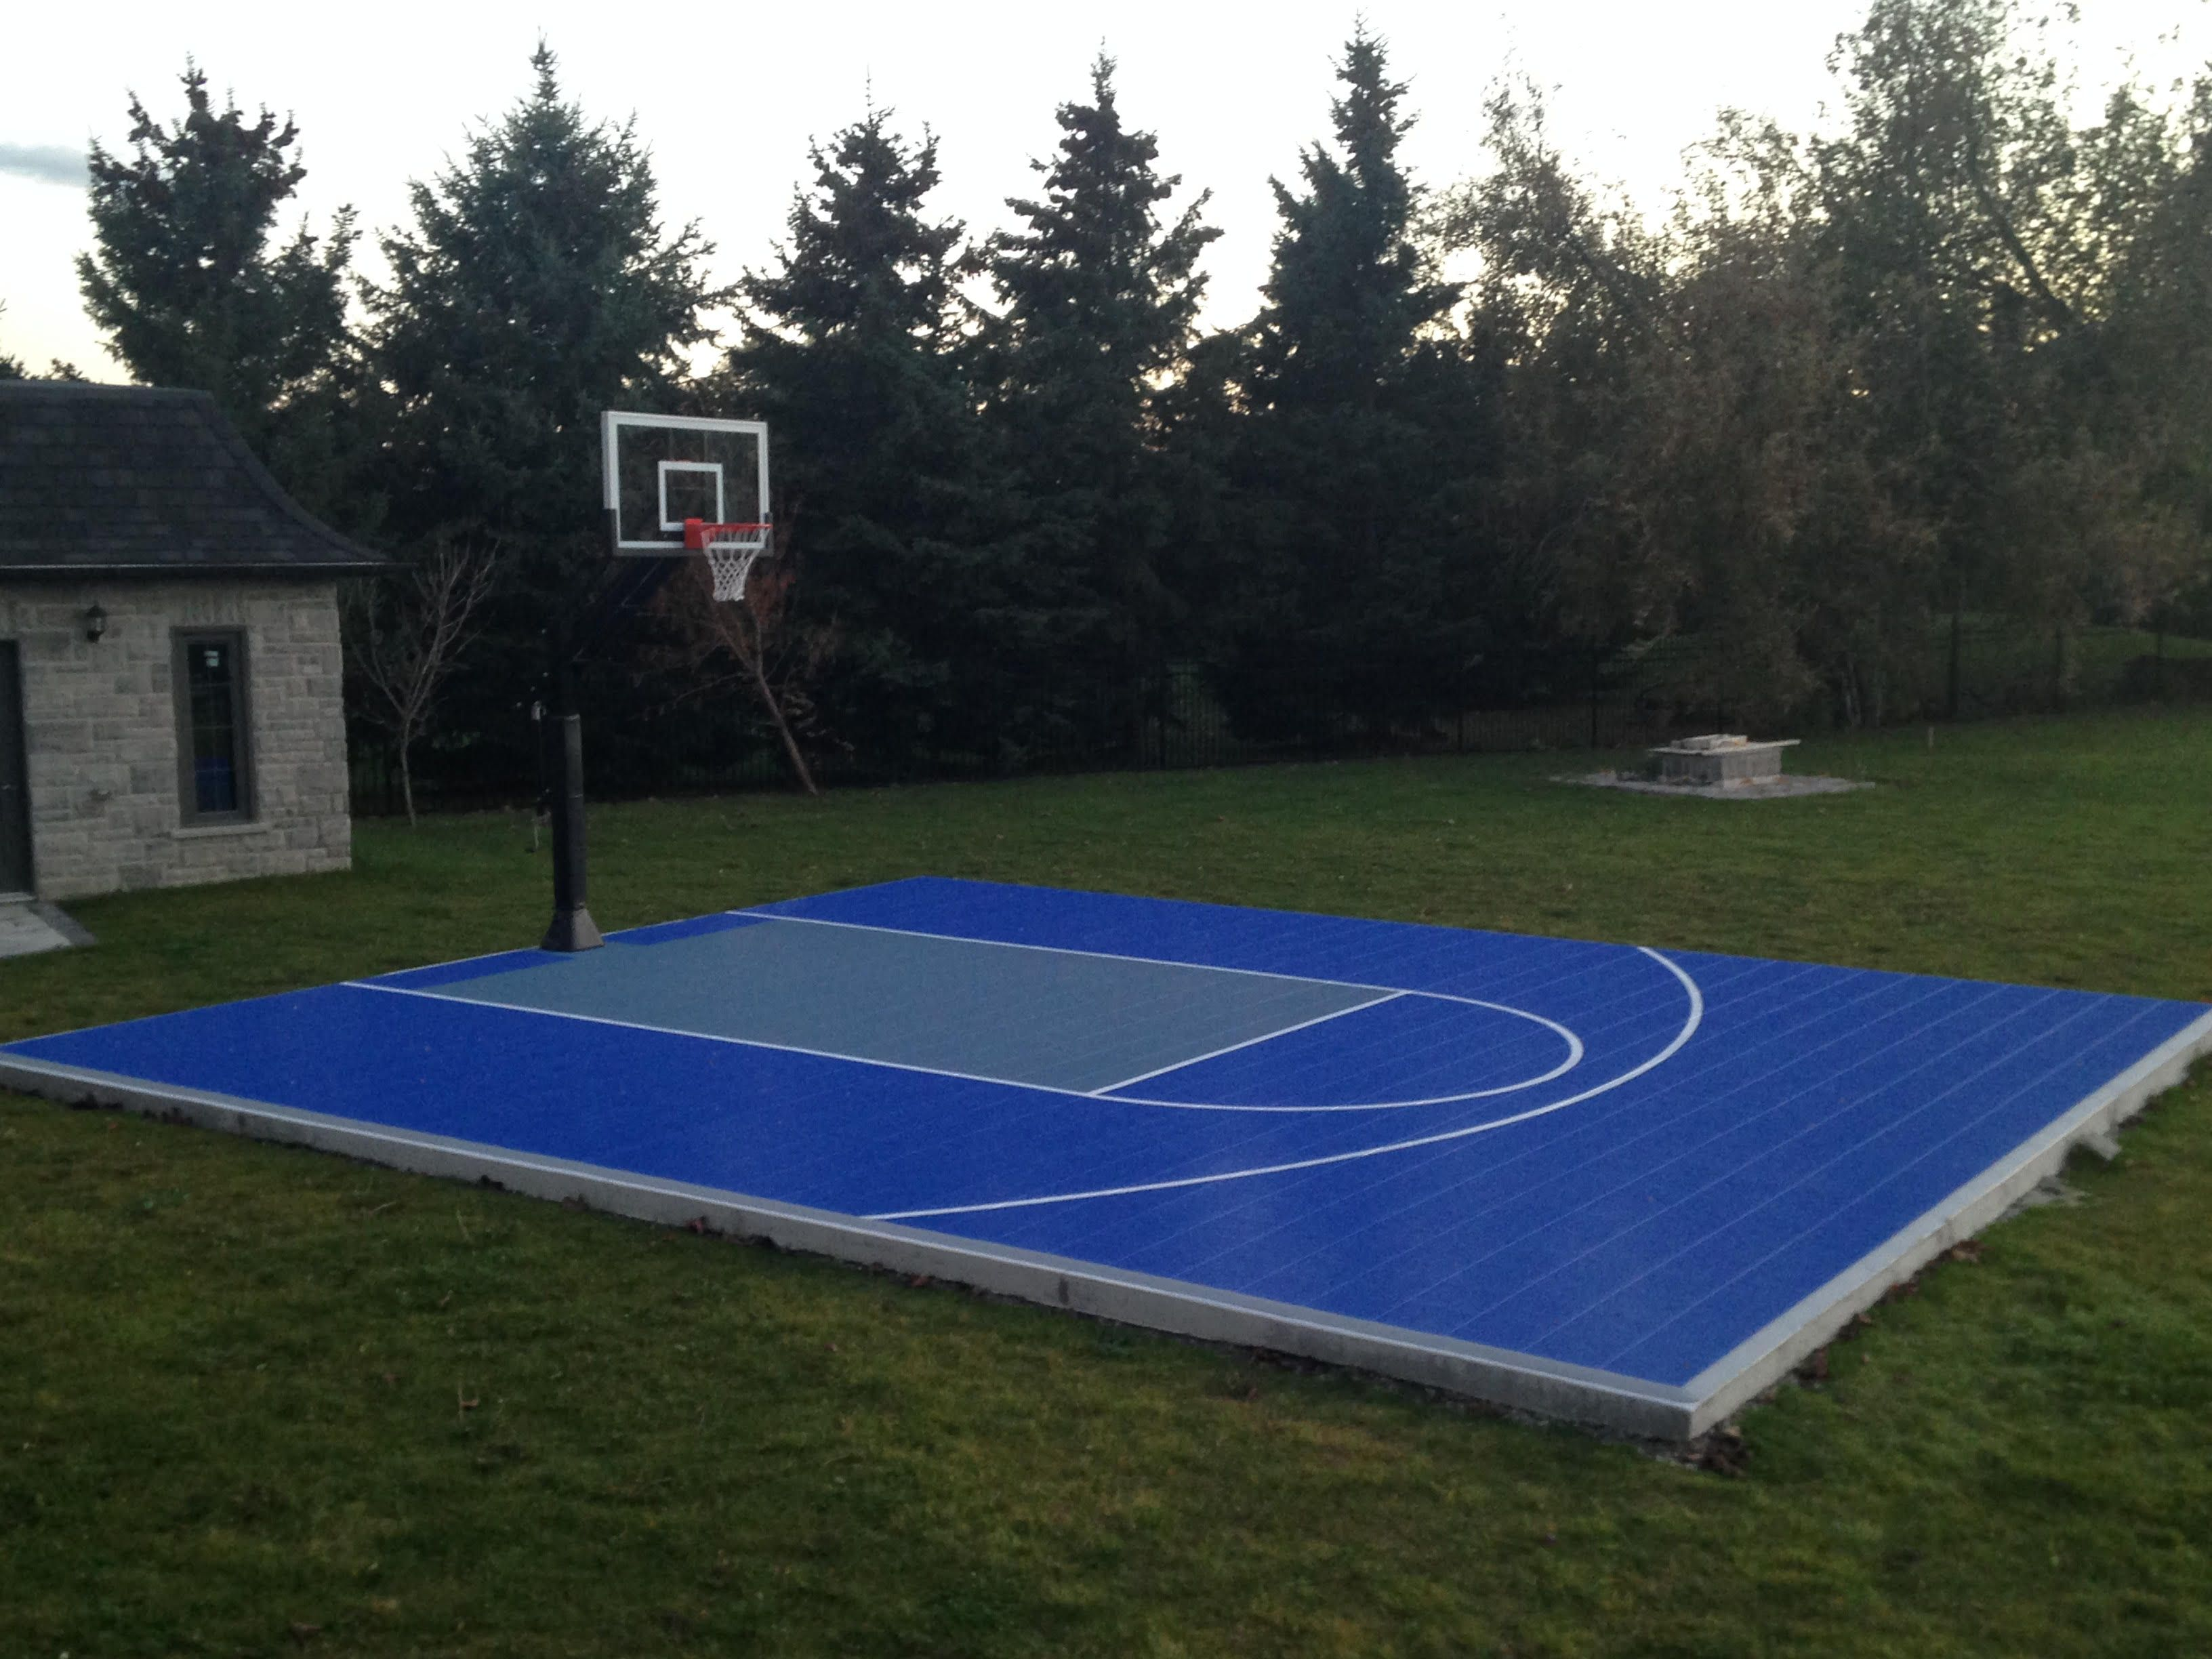 28x34 Backyard Basketball Court Waiting For The Kids To Get Home From School Basketball Court Backyard